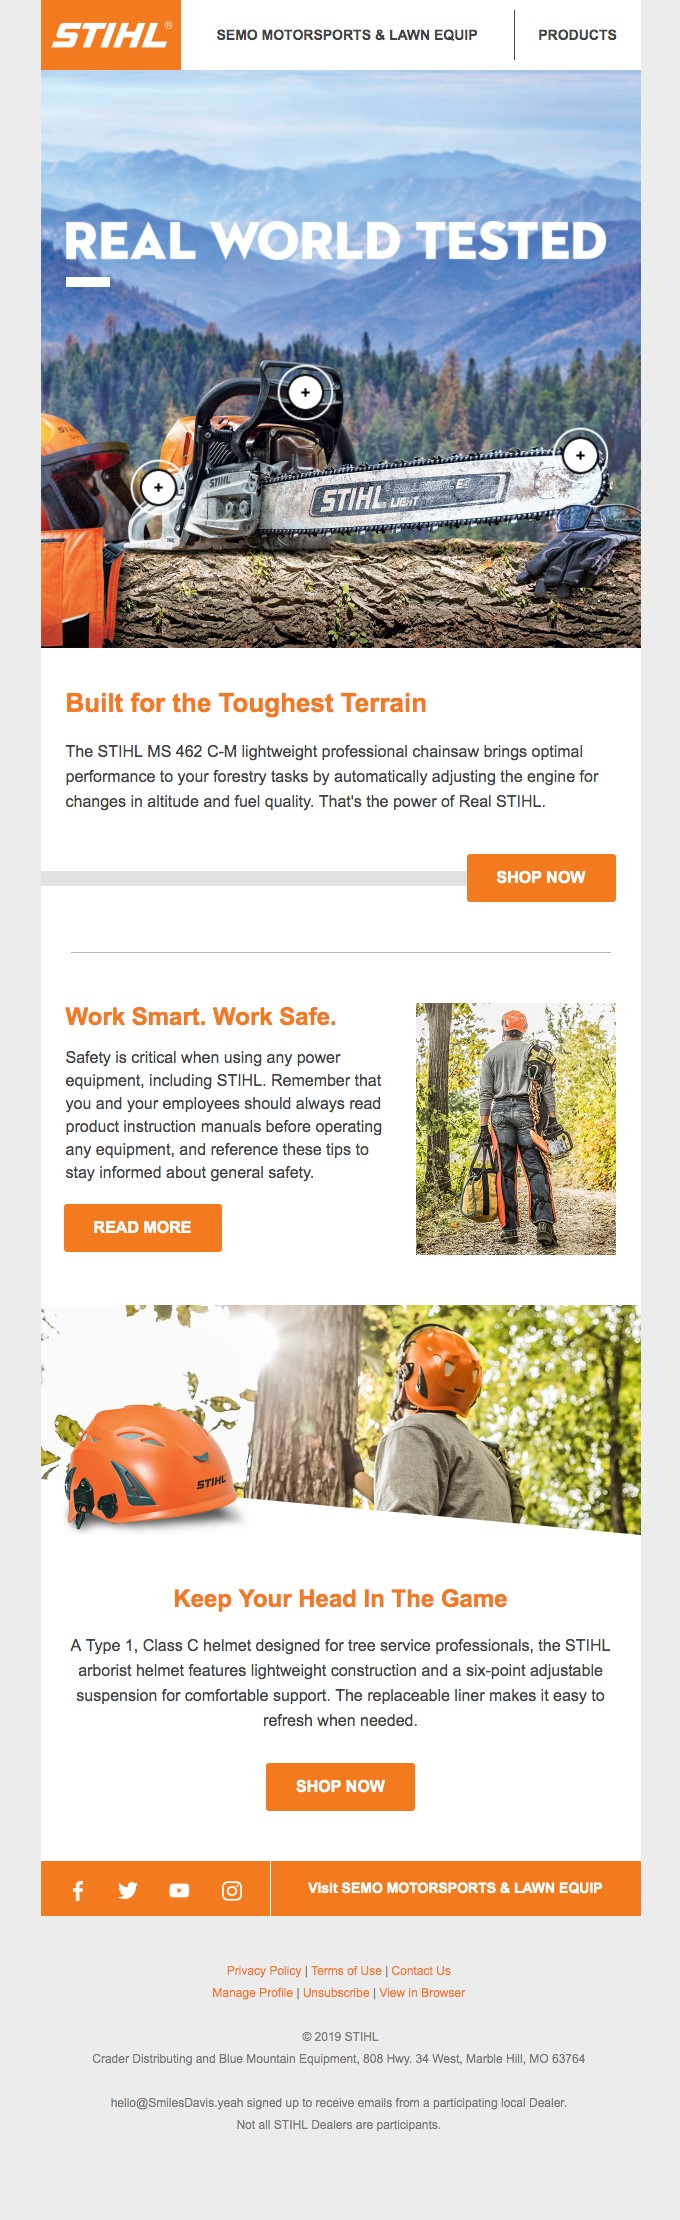 Stihl sends great emails to their niche audience.